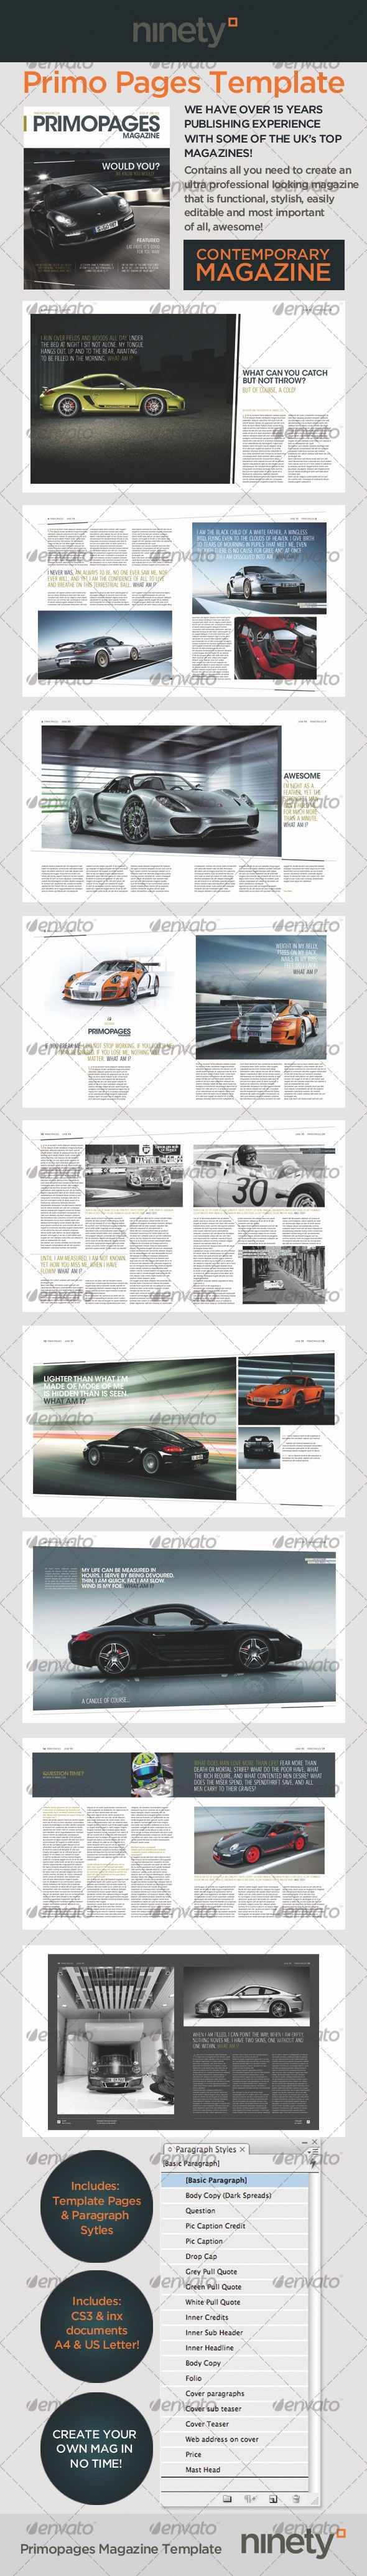 Primo Pages Magazine Template - Magazines Print Templates